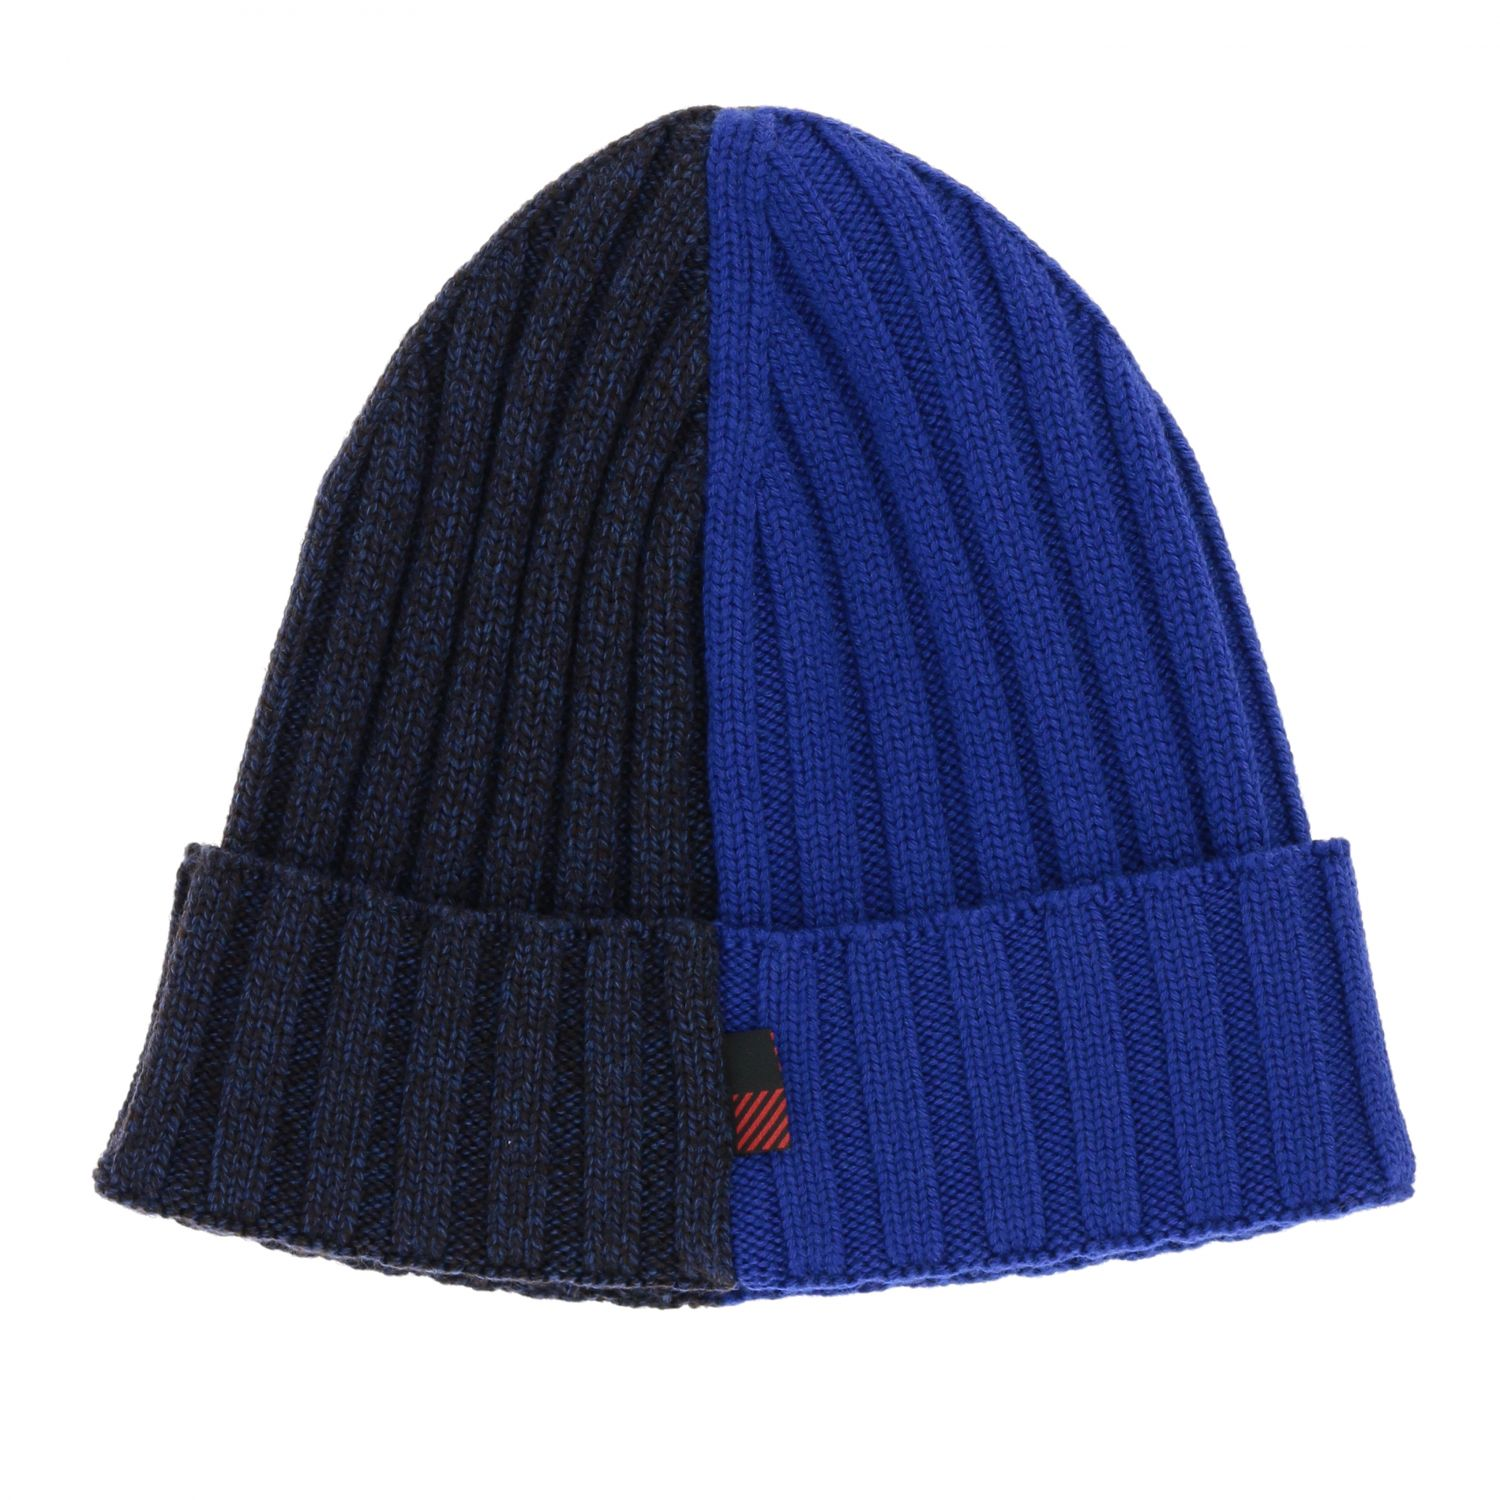 Cappello Woolrich effetto bicolor a coste blue 2